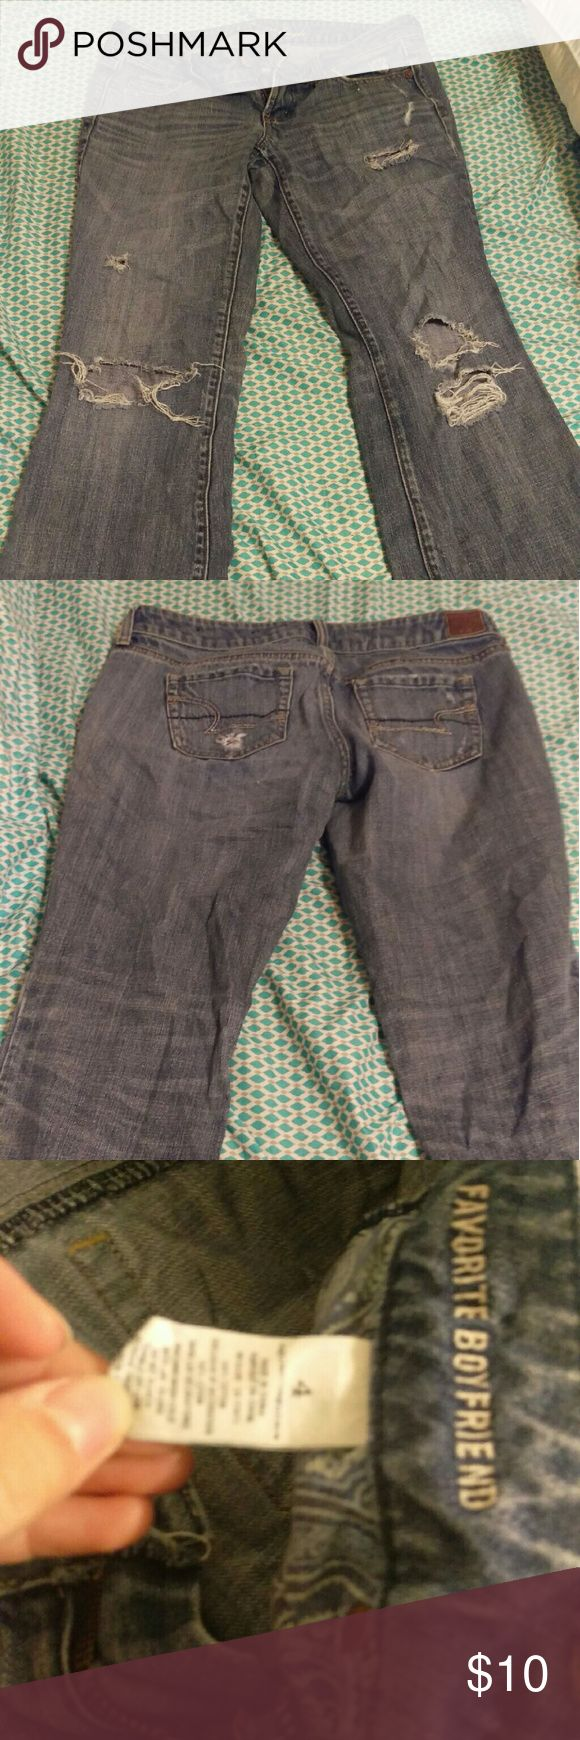 American eagle Small tear pictures. Otherwise good condition American Eagle Outfitters Jeans Boyfriend